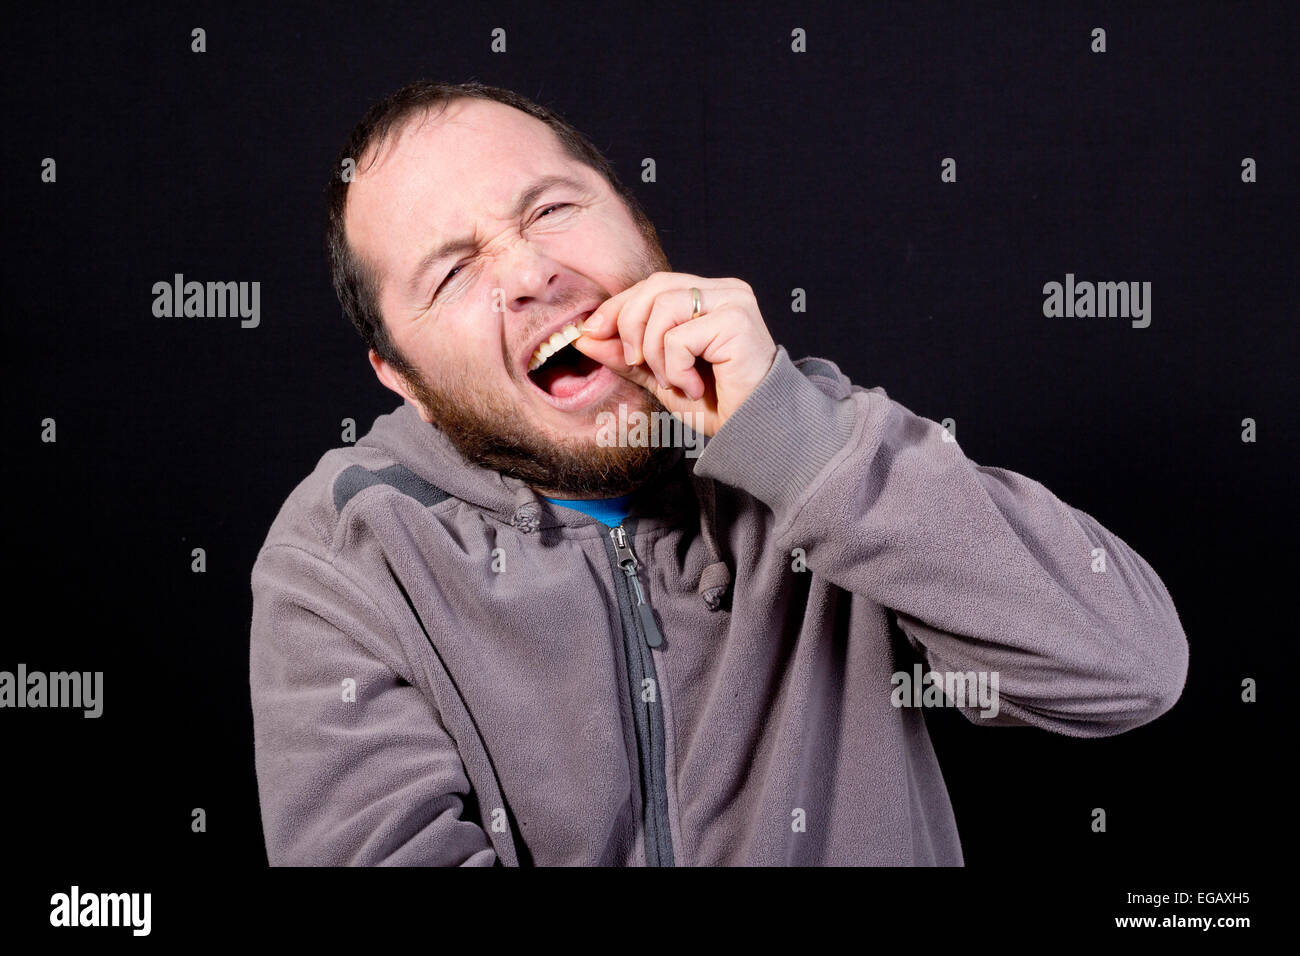 man with toothache isolated on black - Stock Image